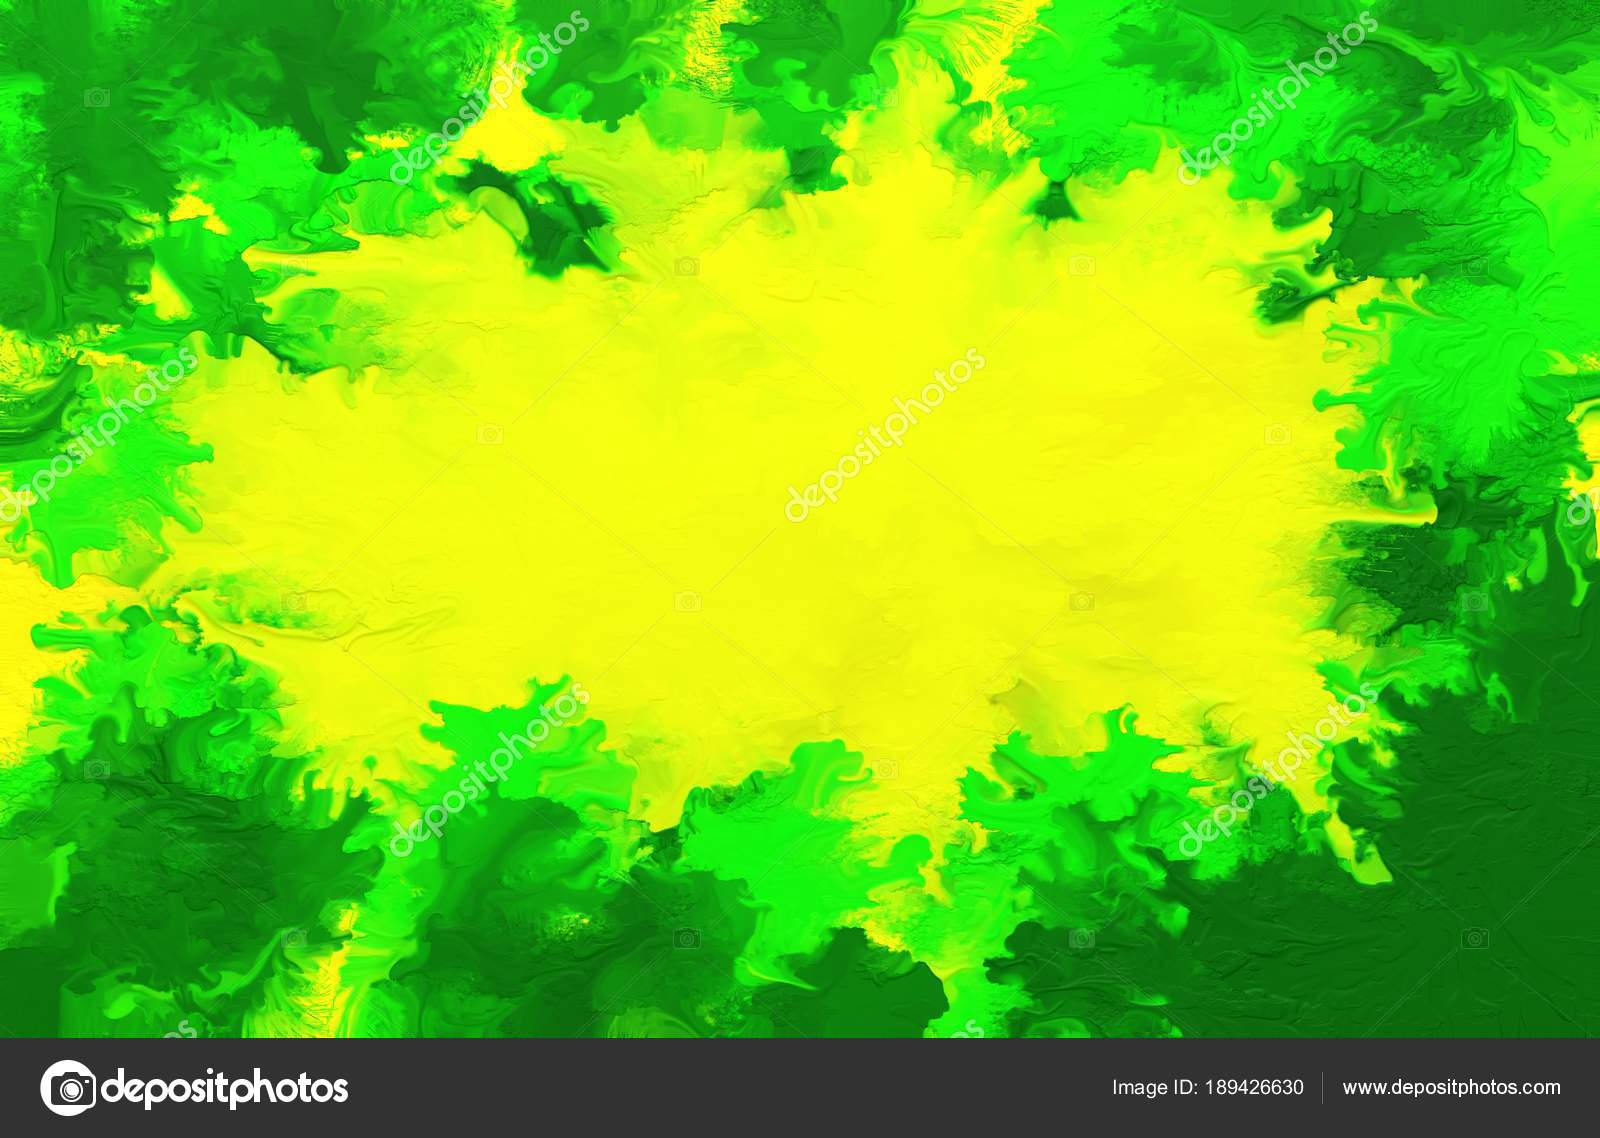 Abstract oil painting background colorful digital illustration stock image